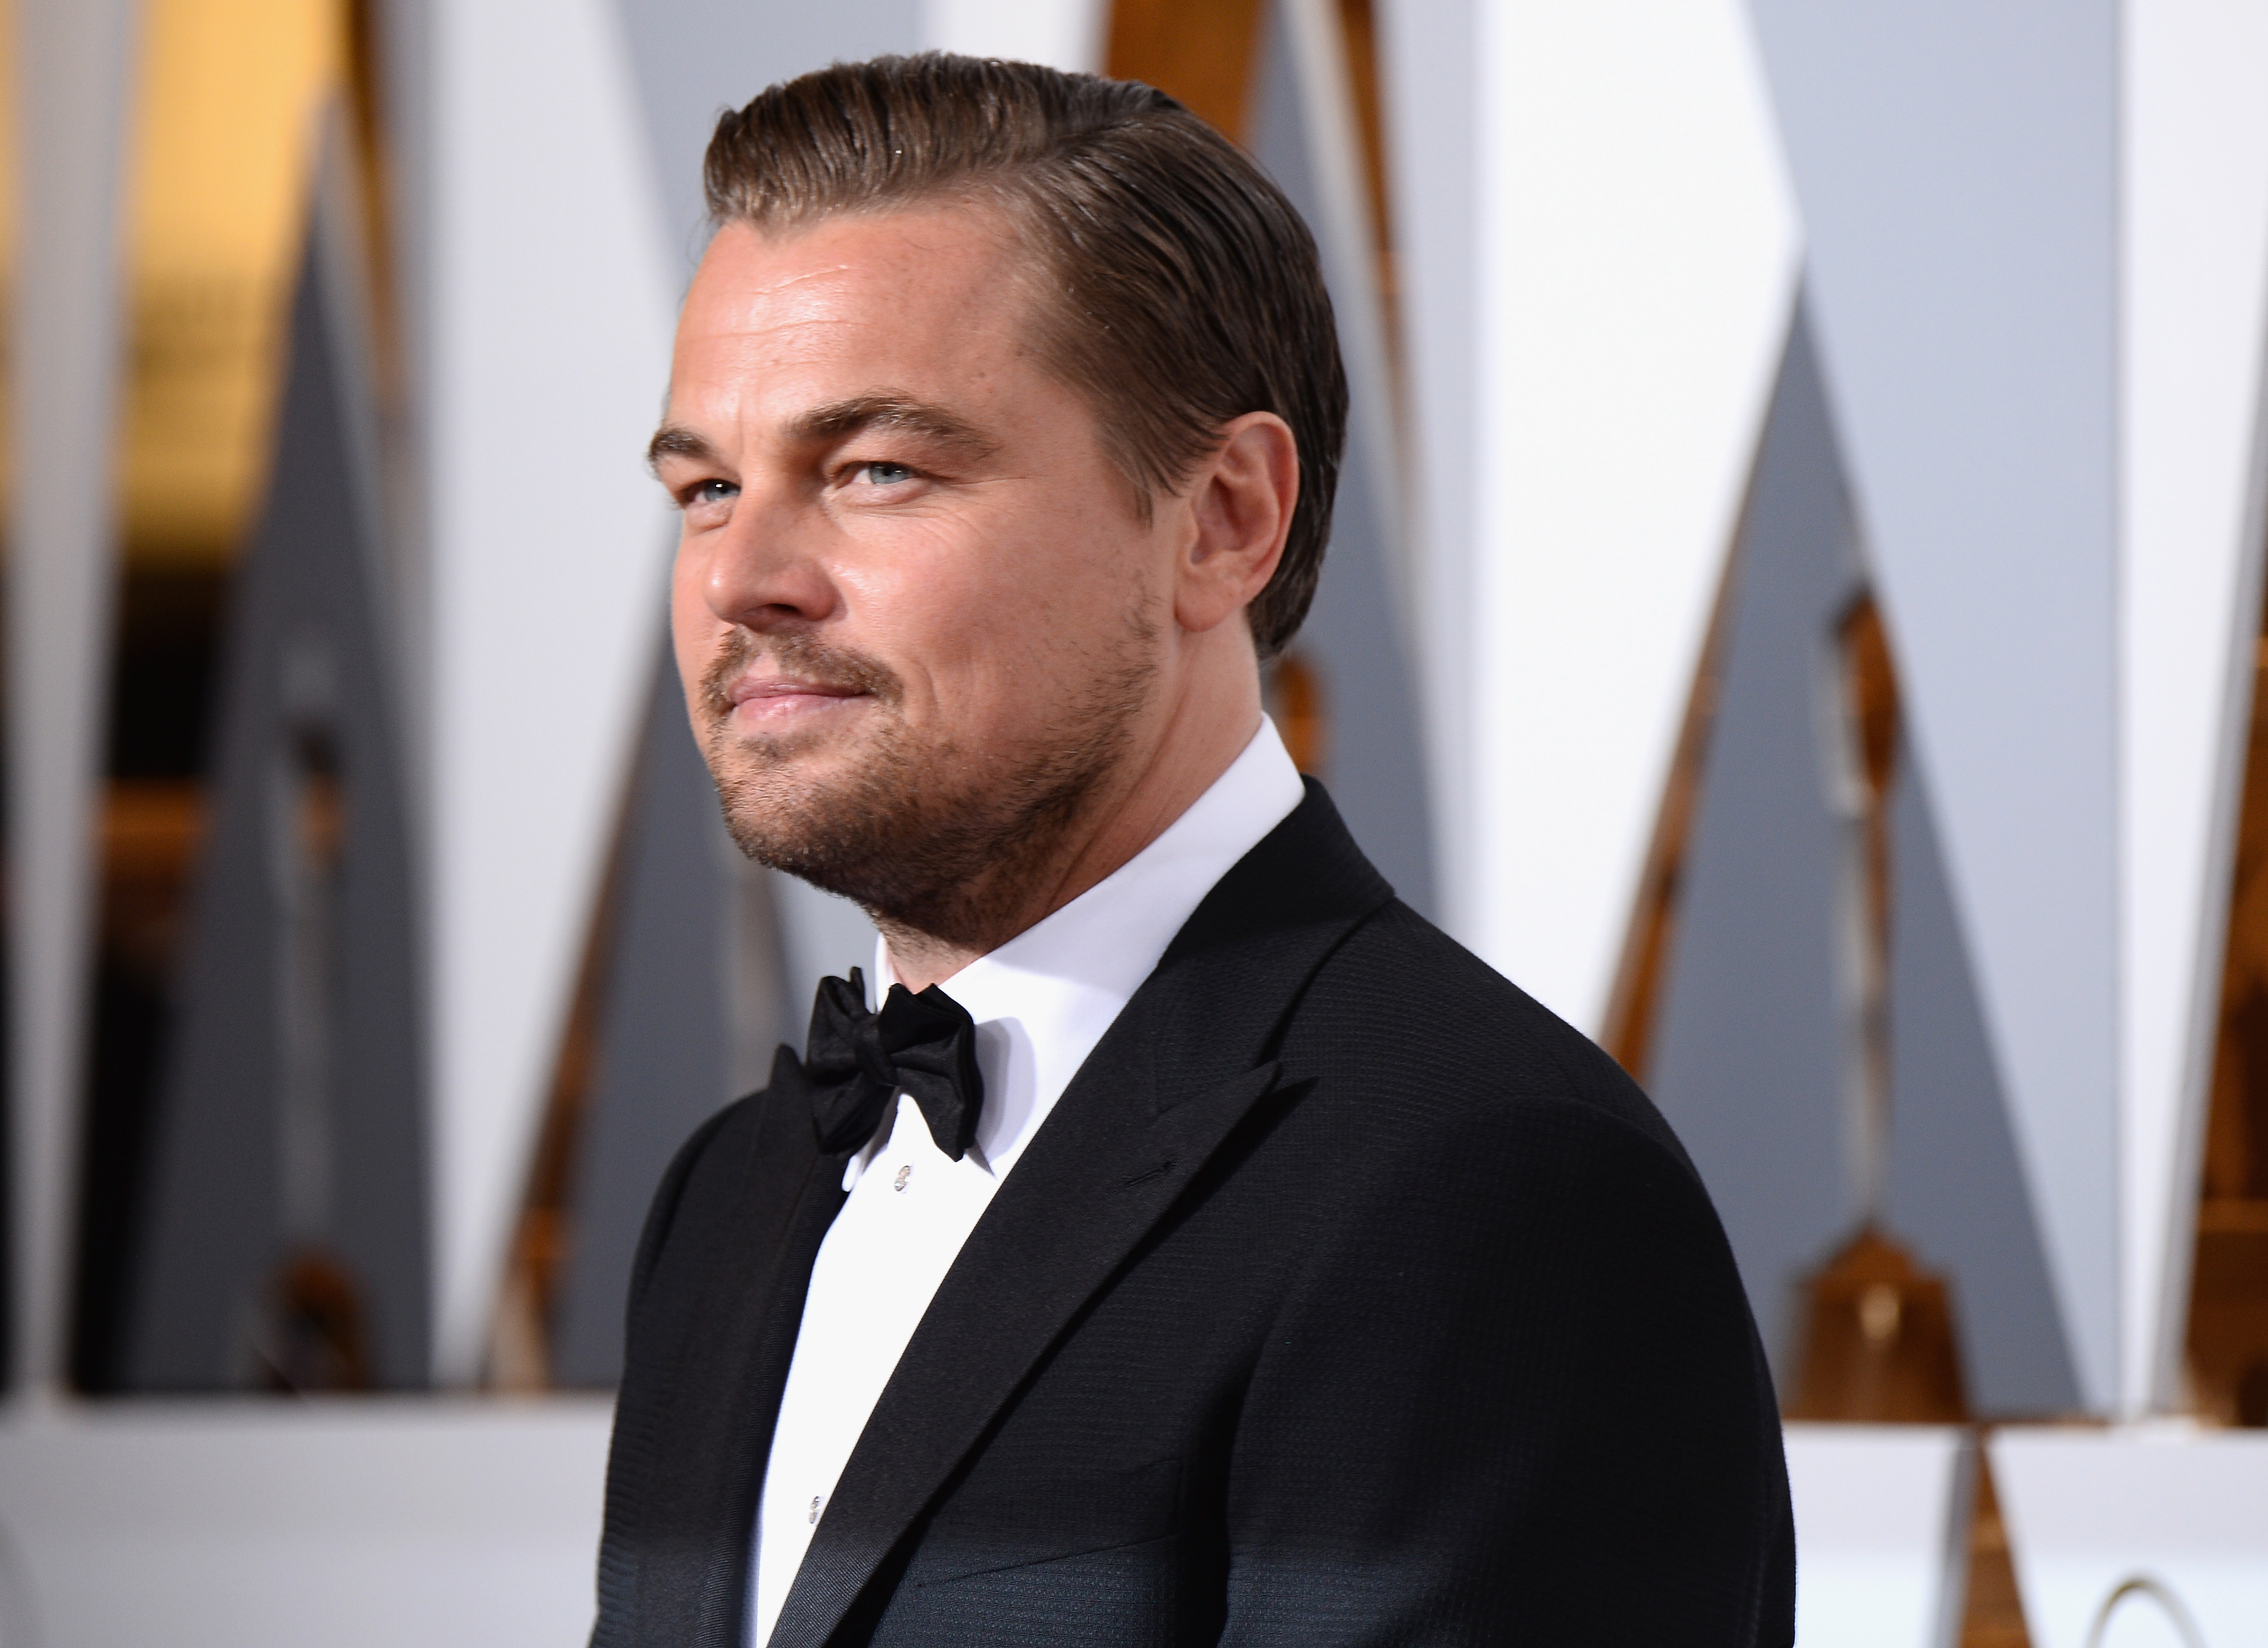 HOLLYWOOD, CA - FEBRUARY 28: Actor Leonardo DiCaprio attends the 88th Annual Academy Awards at Hollywood & Highland Center on February 28, 2016 in Hollywood, California. (Photo by Frazer Harrison/Getty Images)